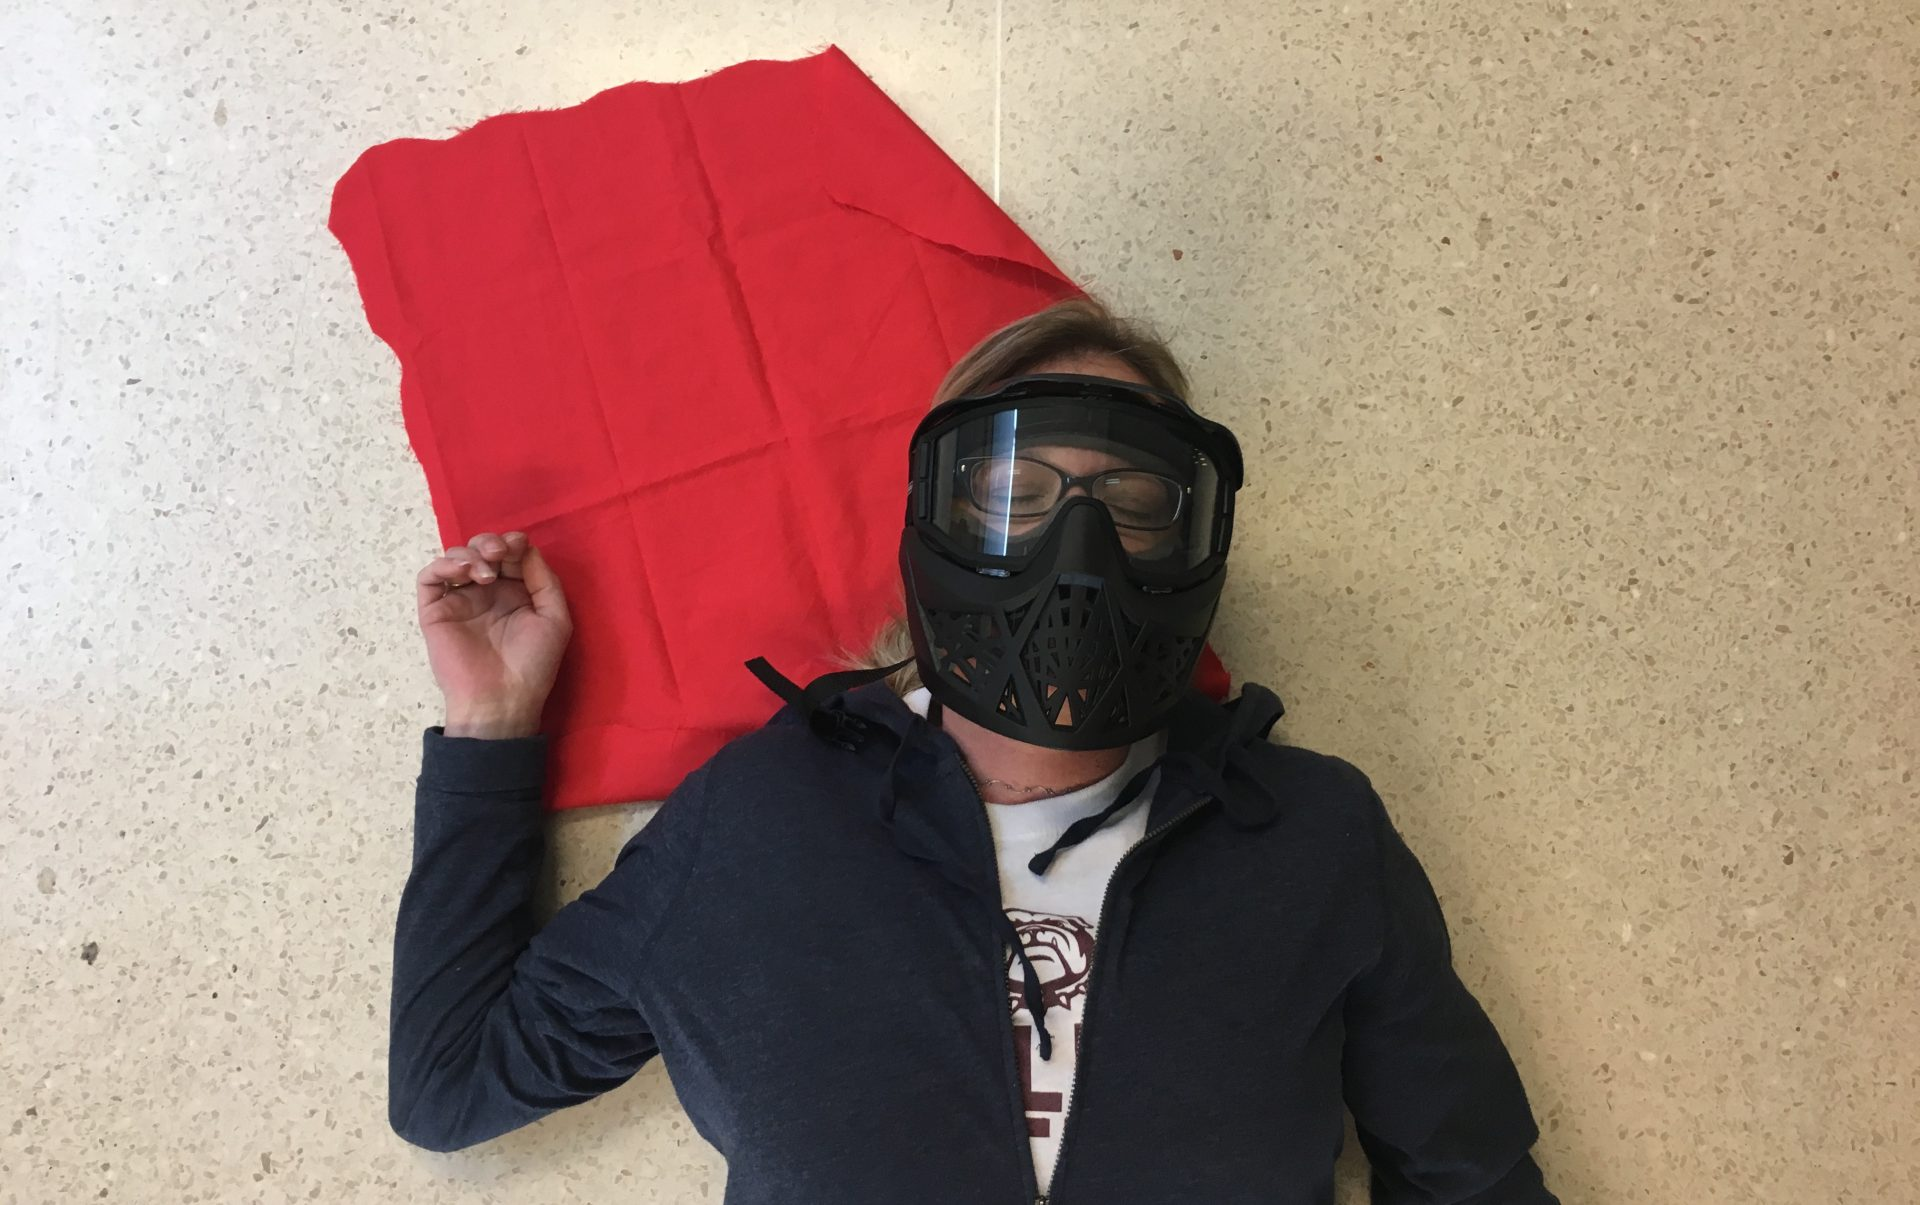 Angie lies on the ground, playing dead during a FASTER school shooting simulation.